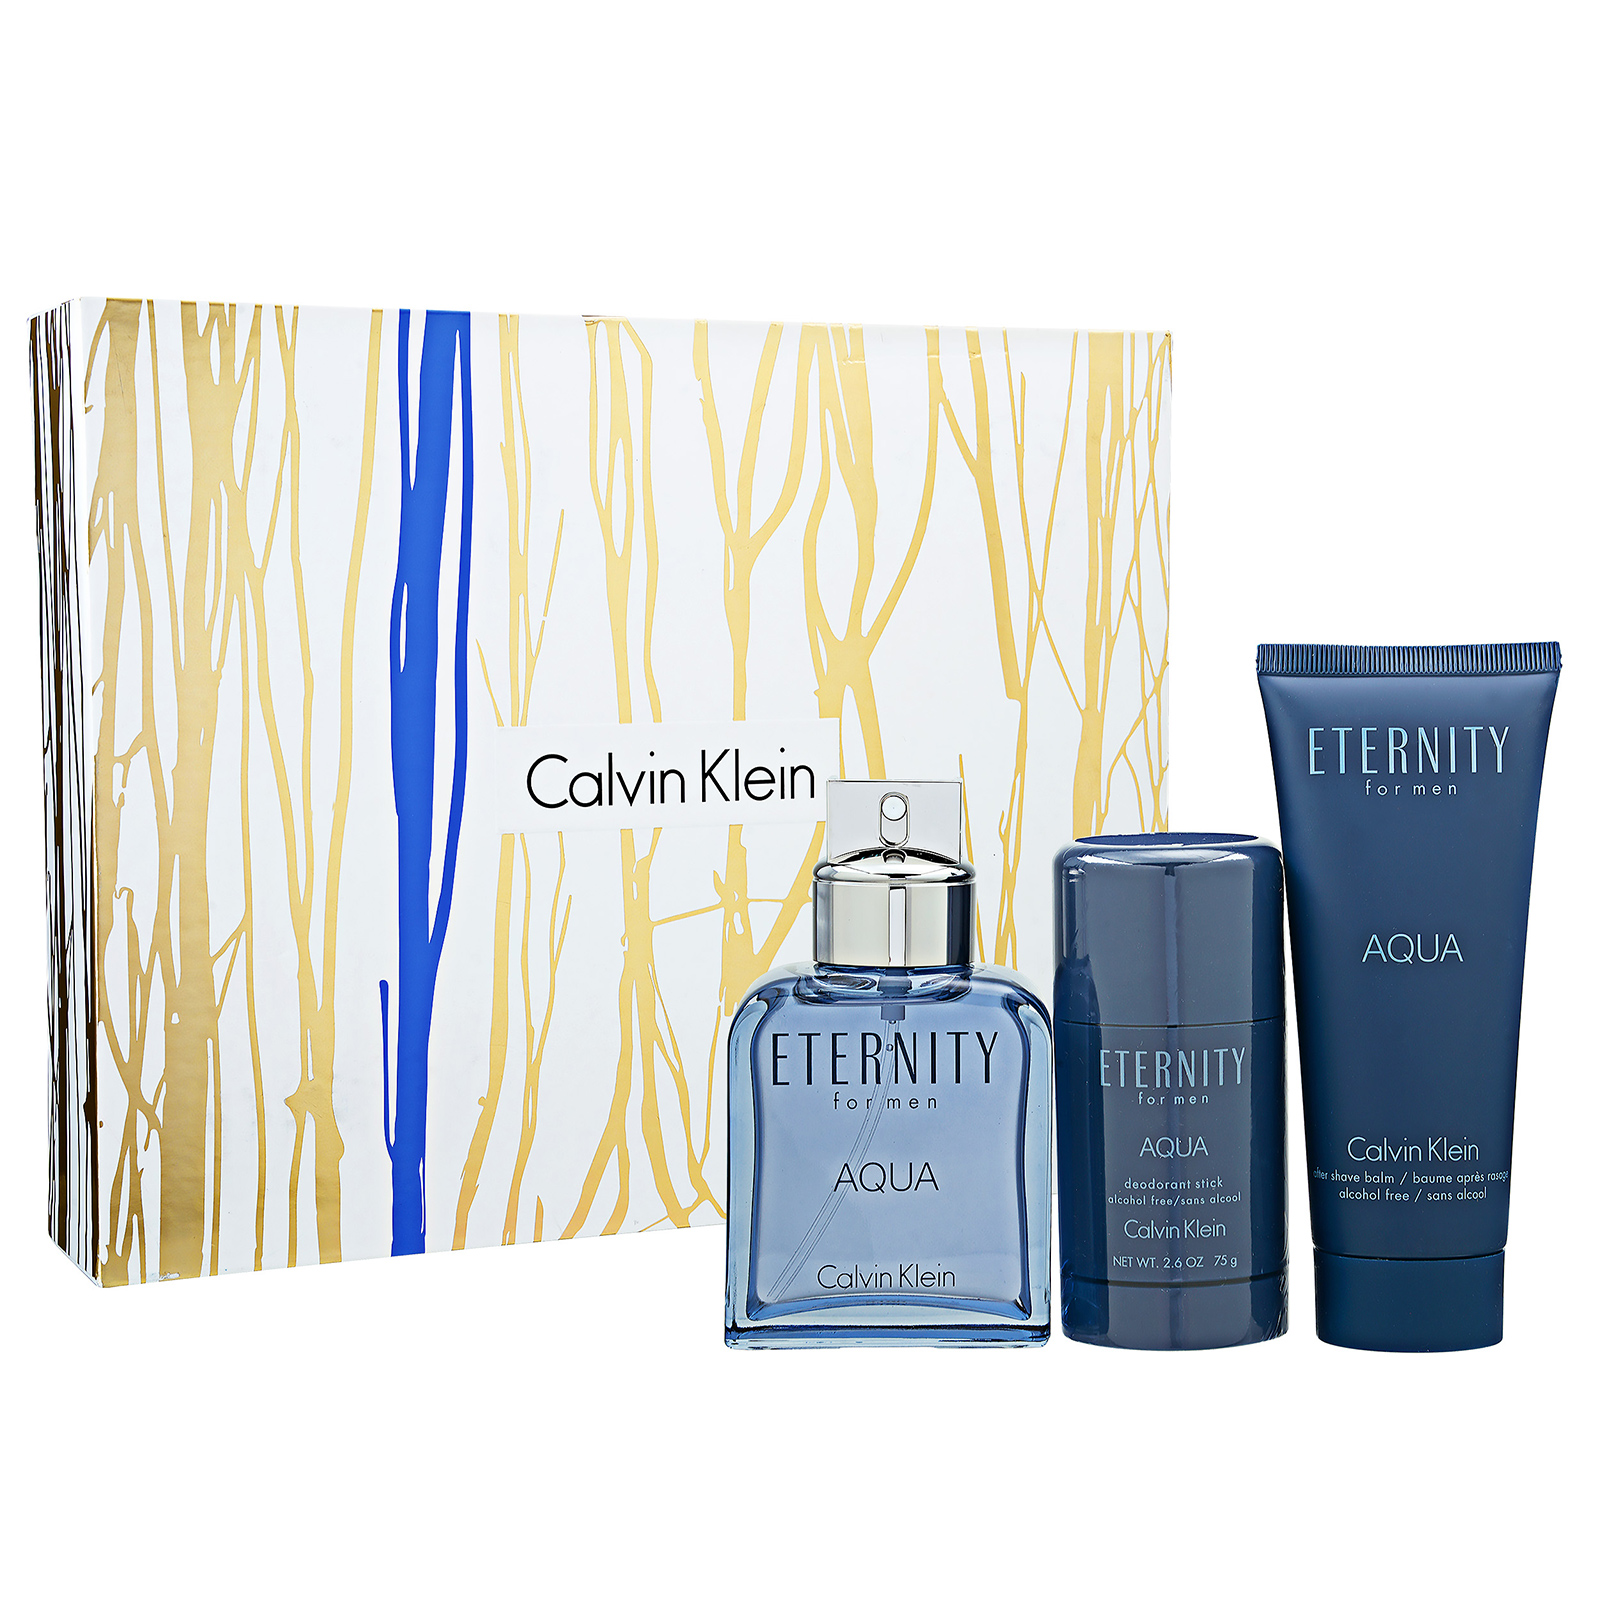 Calvin Klein Eternity For Men Aqua EDT 3-Piece Set 1set, 3pcs 3.4oz Spray Aftershave Deodorant